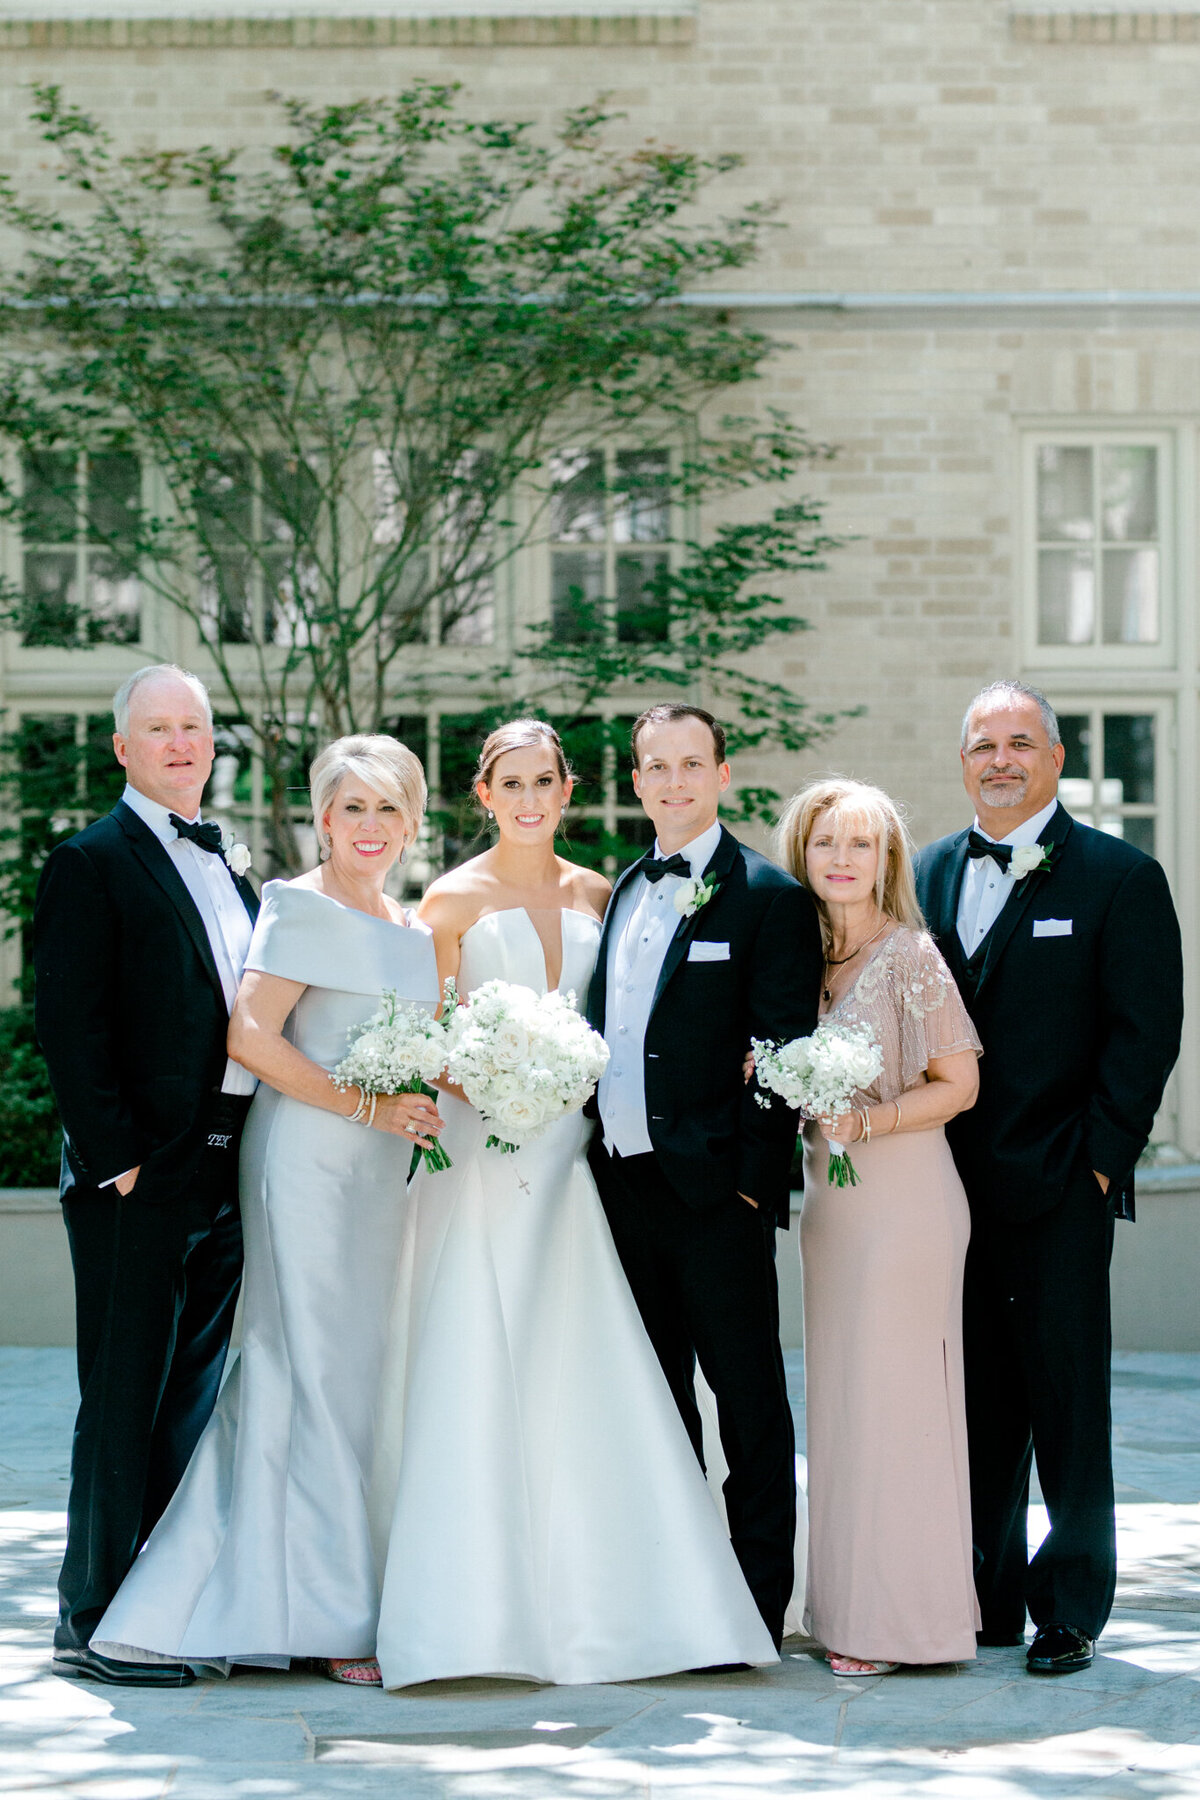 Wedding at the Crescent Court Hotel and Highland Park United Methodist Church in Dallas | Sami Kathryn Photography | DFW Wedding Photographer-96